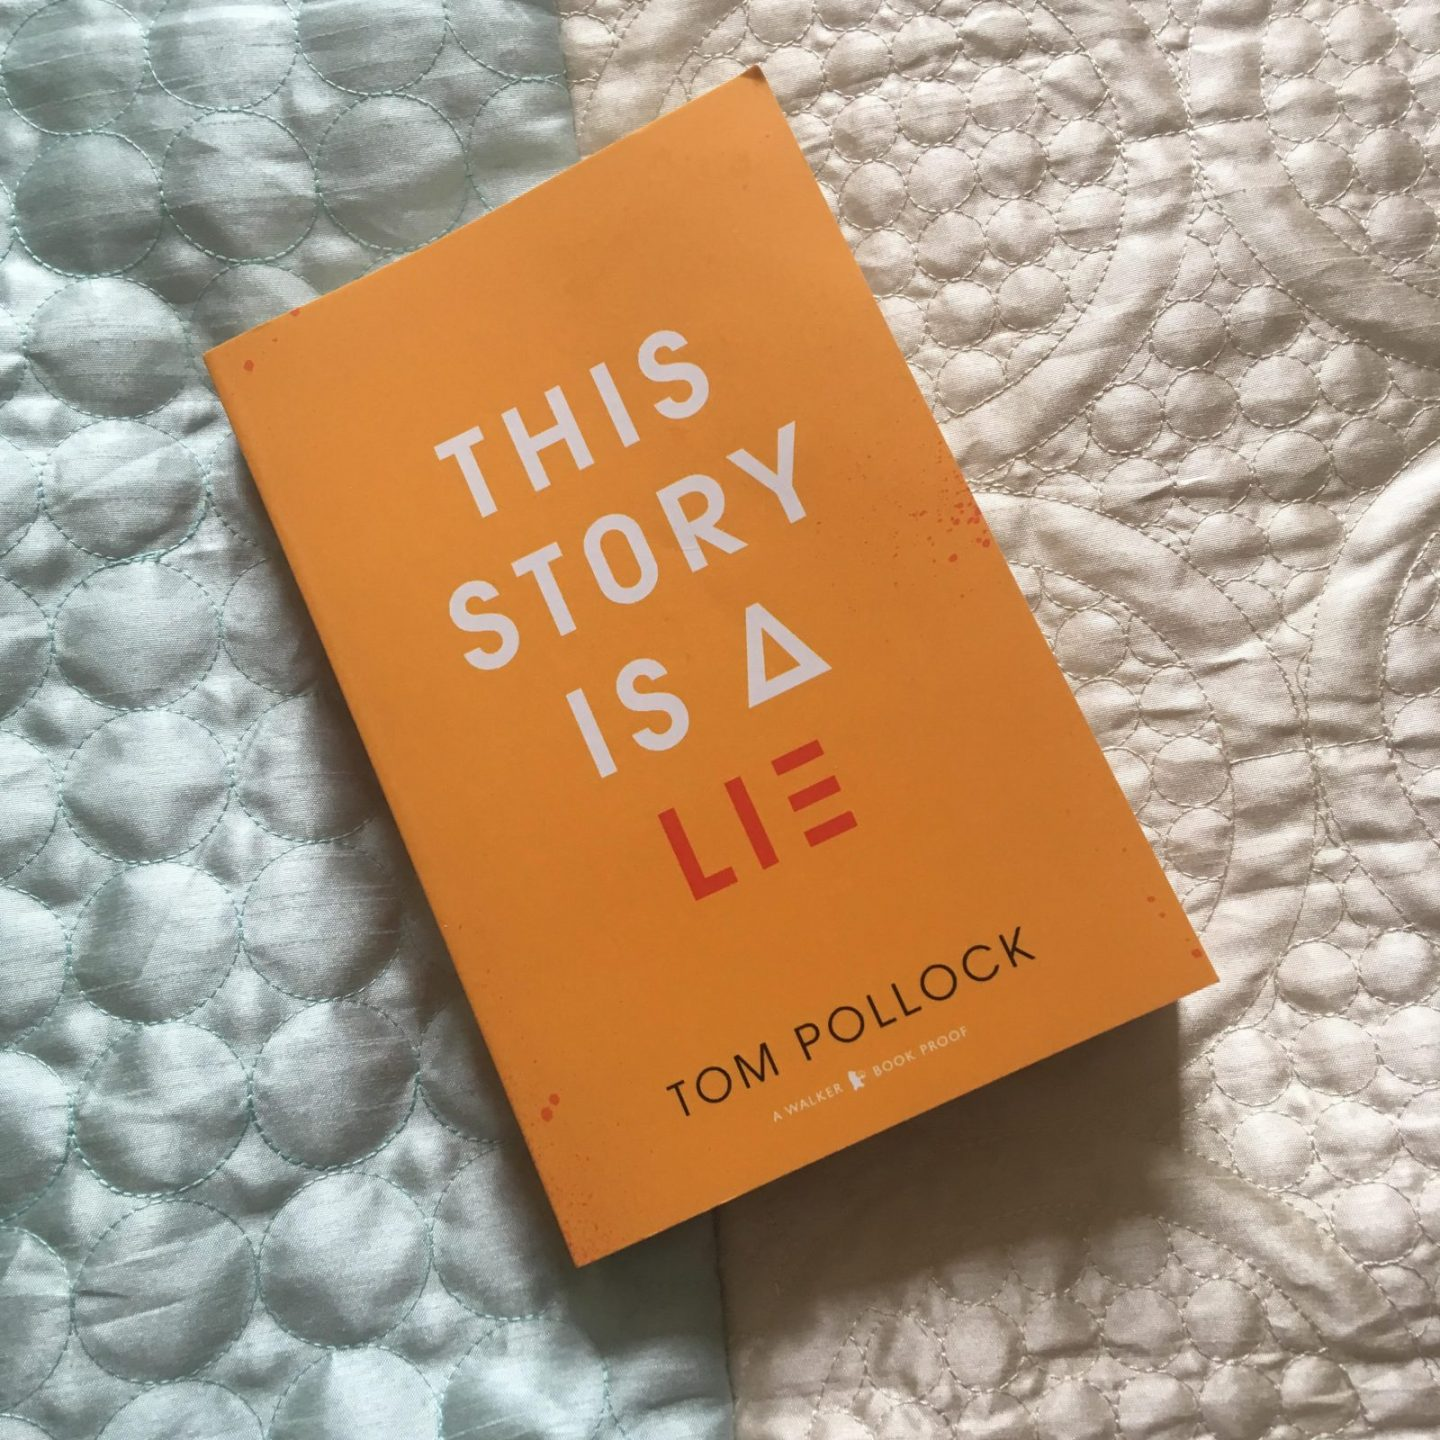 orange book cover reading 'this story is a lie'